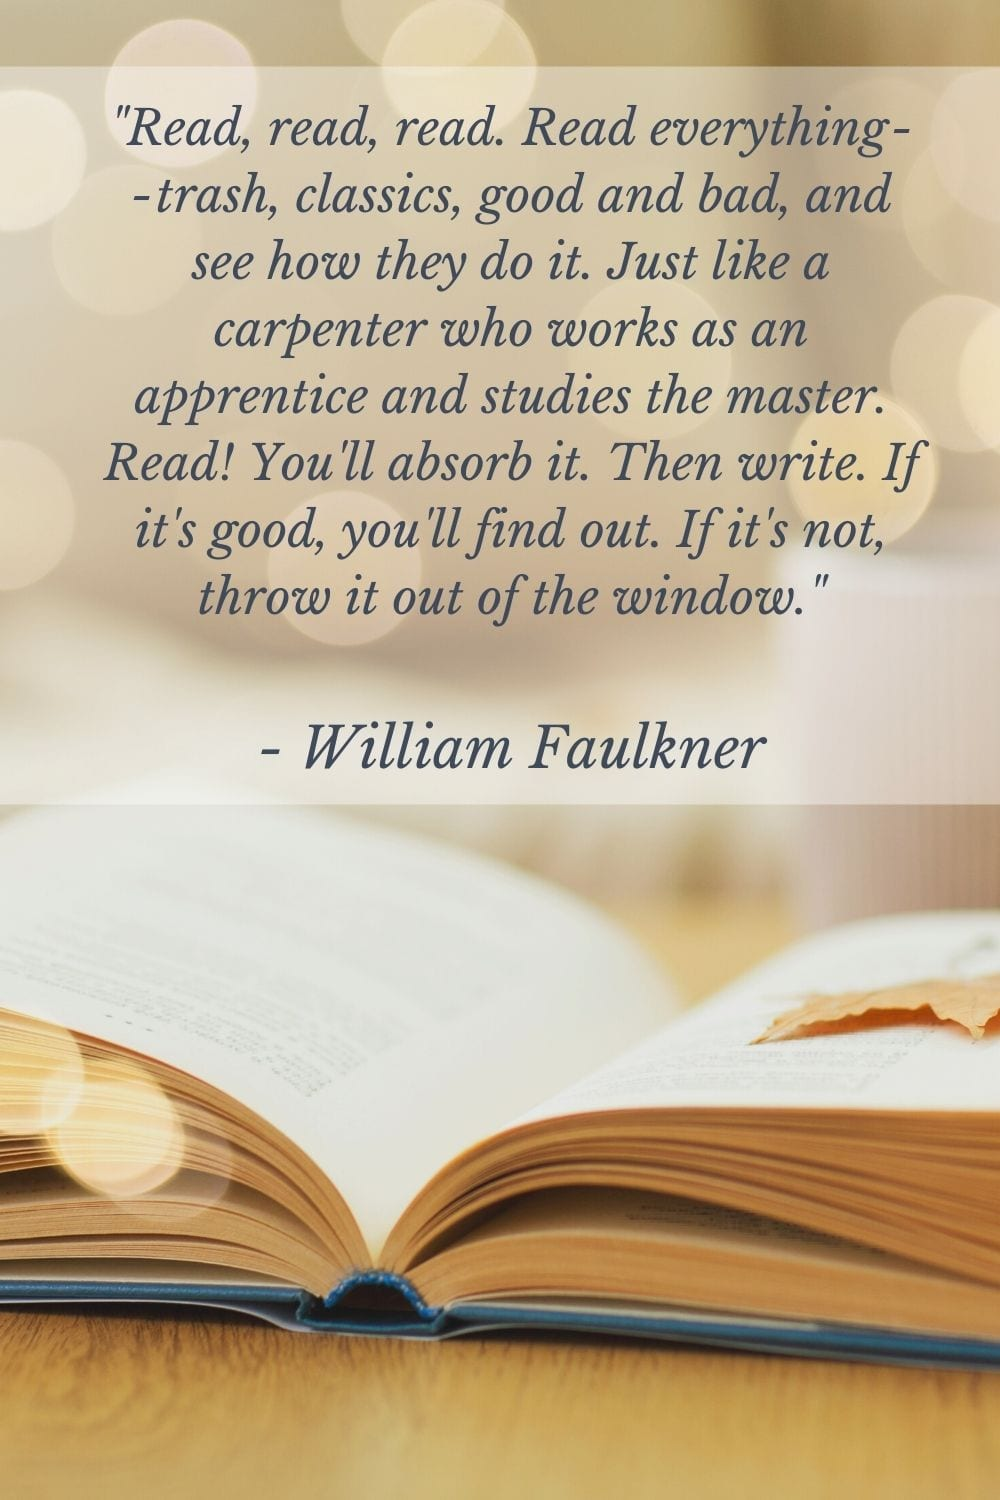 Faulkner quote on writing